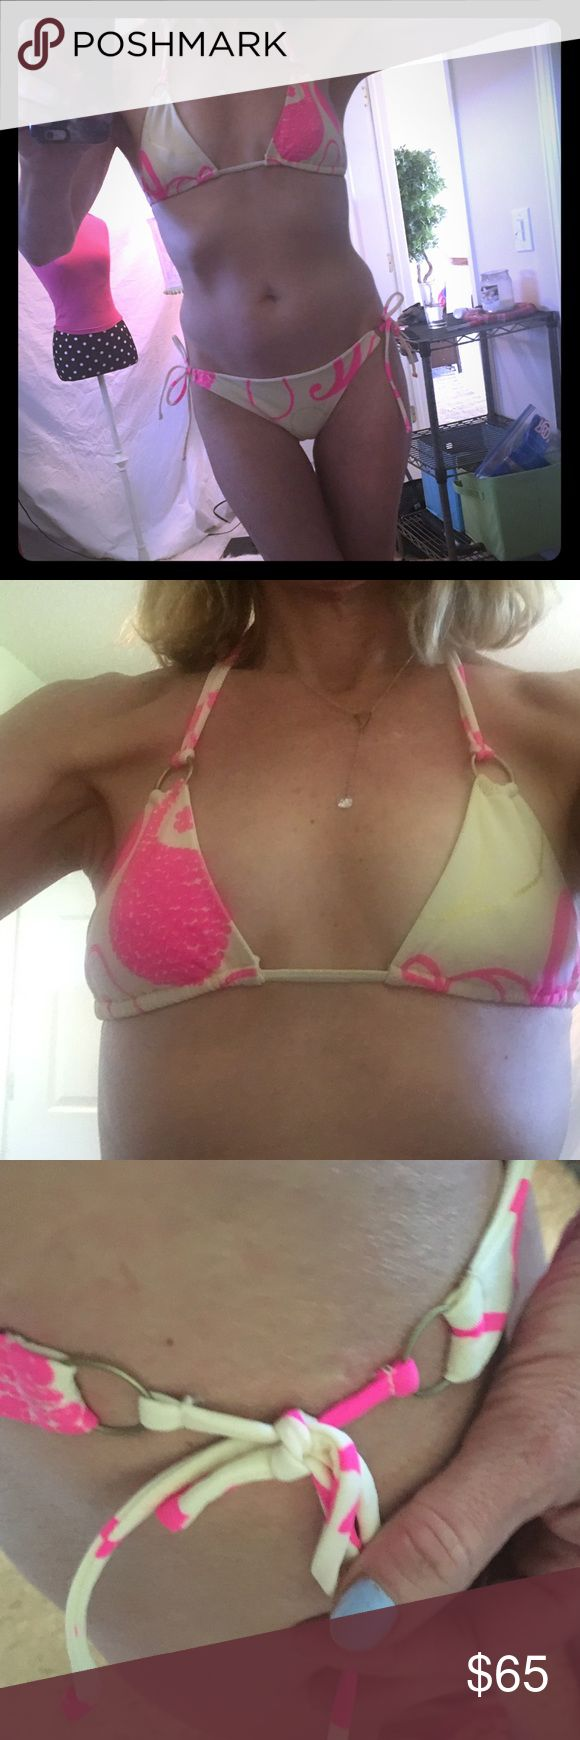 BIKINI Really cute pink and cream colored bikini. Pretty sure it's a CHIO but I cut tags out and don't remember for sure I know it was about $150 and I think it's a small possibly medium real quality made bikini excellent condition Swim Bikinis